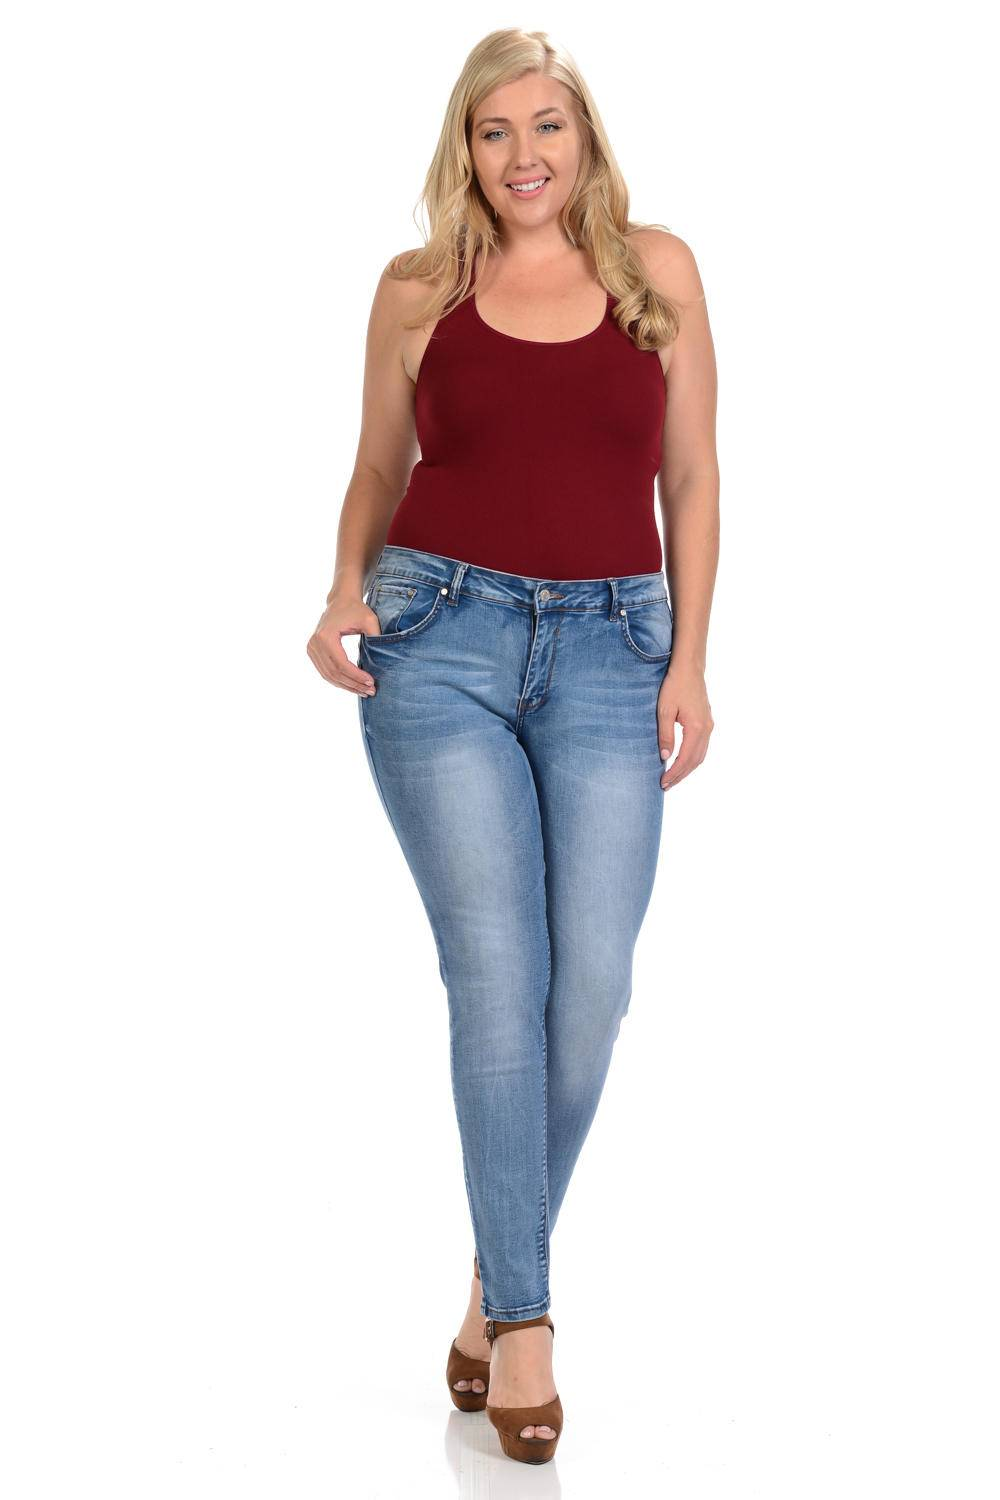 Size Chart For Women Jeans